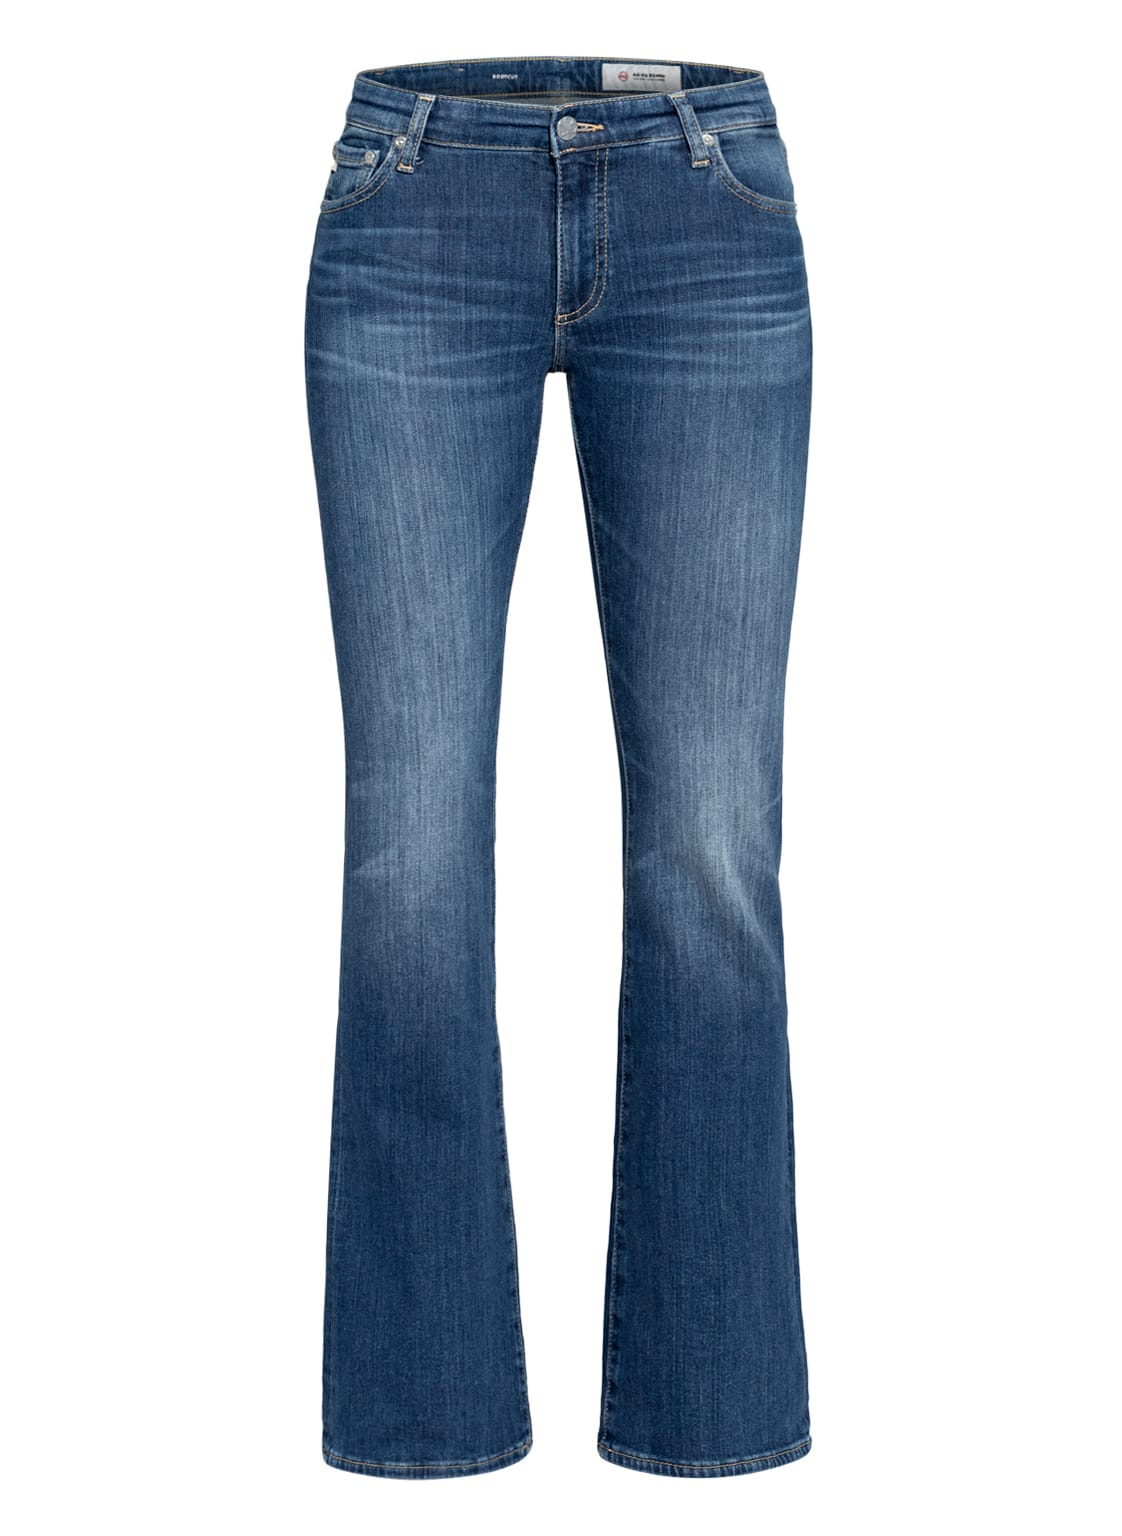 Image of Ag Jeans Bootcut Jeans blau